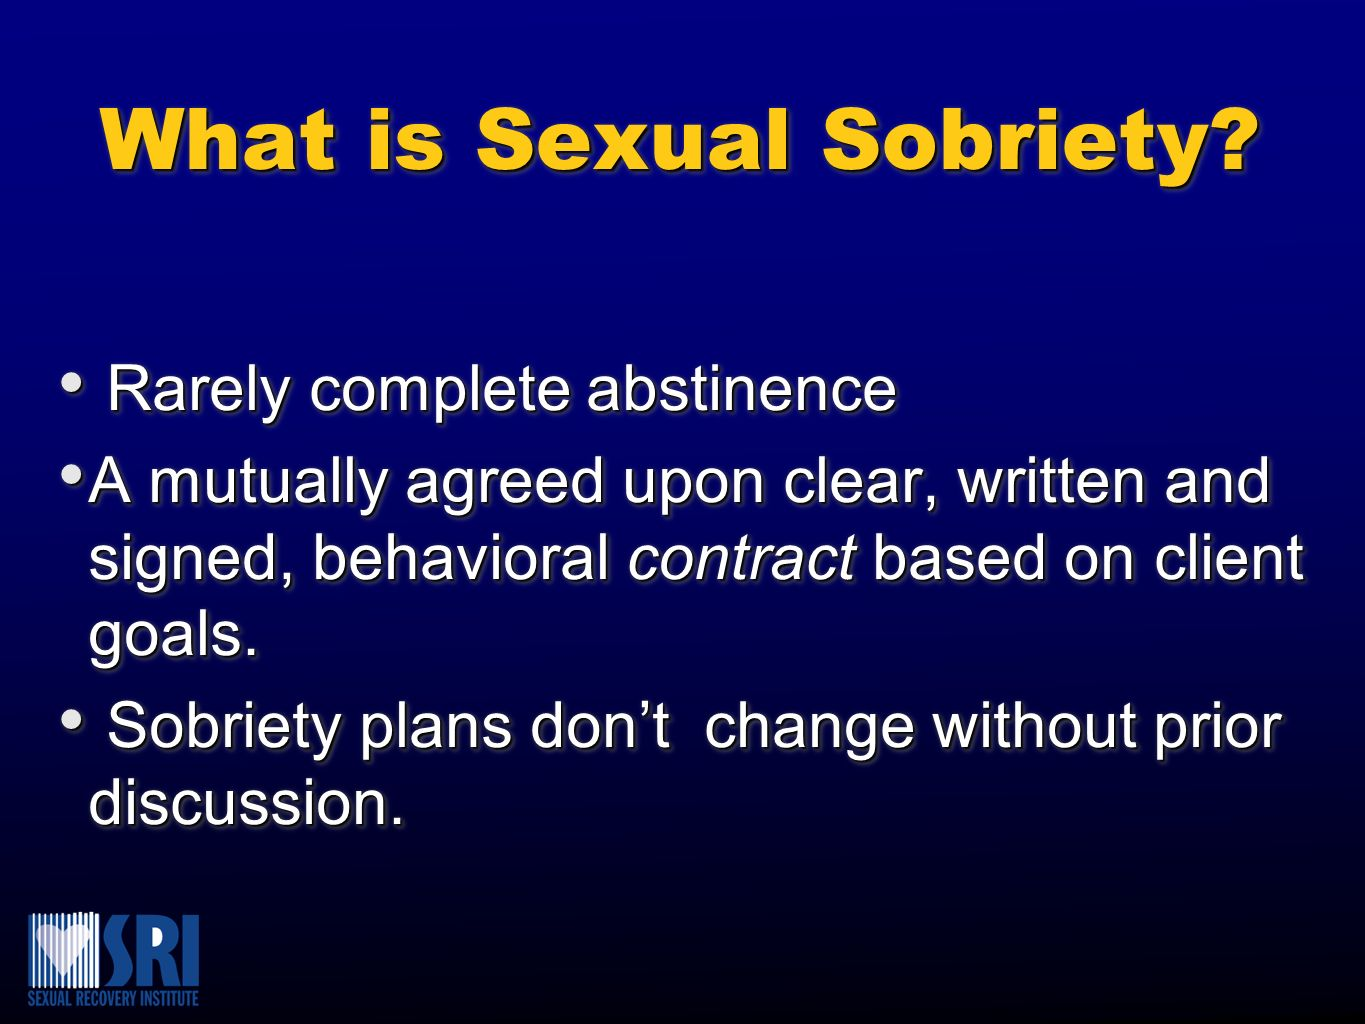 Sexual Sobriety Contract List of Behaviors I Want to Stop A B C D E F List of Behaviors I Want to Stop A B C D E F List of Behaviors I Want to Add A B C D E F List of Behaviors I Want to Add A B C D E F